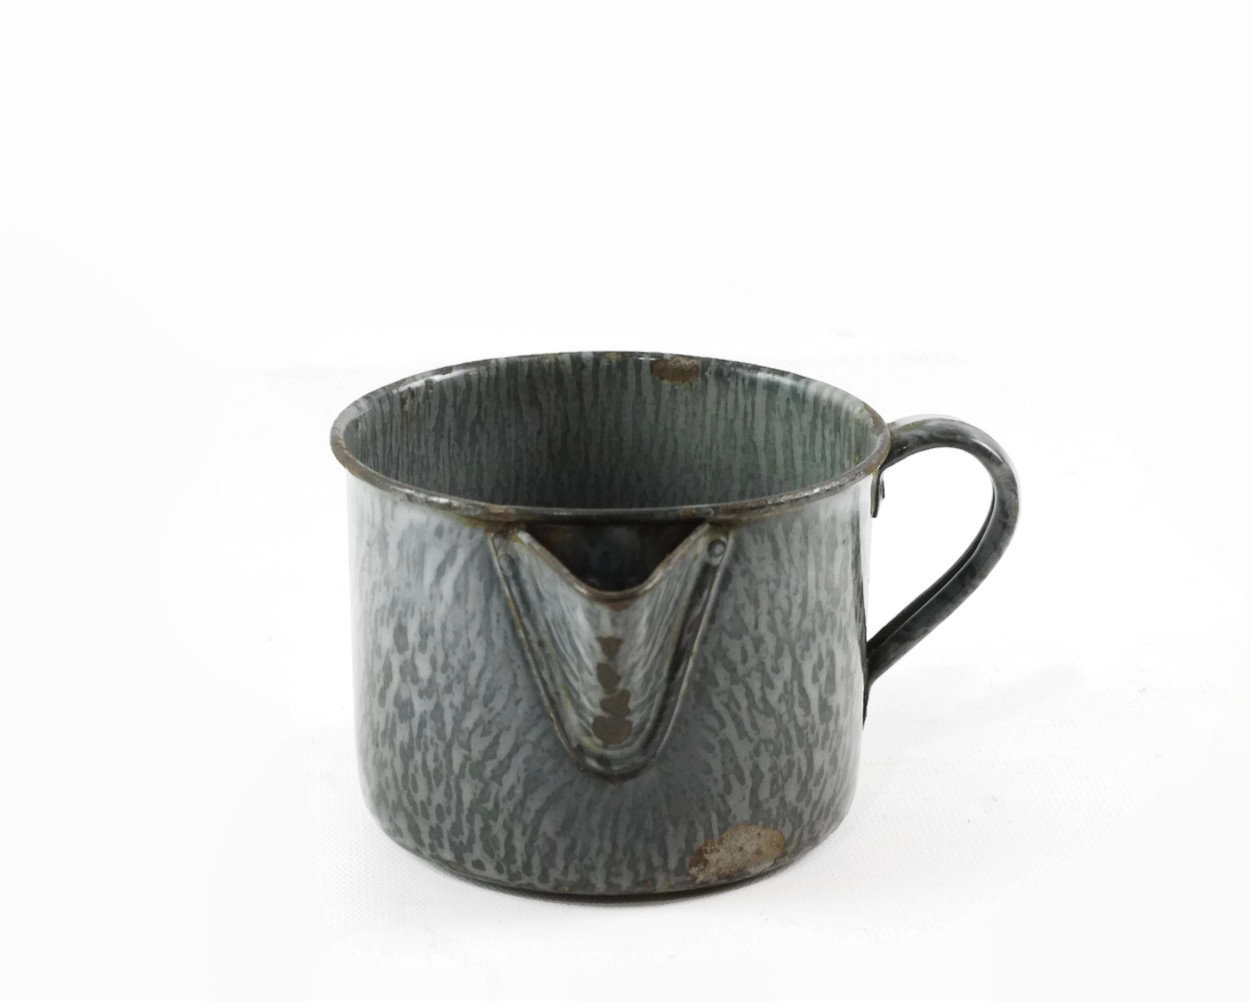 Vintage Enamel Cup With Spout, Gray Graniteware Mug, Rustic Farmhouse  Decor, Small Enamel Pitcher, Enamel Camp Coffee Cup pertaining to Decorative Three Stacked Coffee Tea Cups Iron Widget Wall Decor (Image 29 of 30)